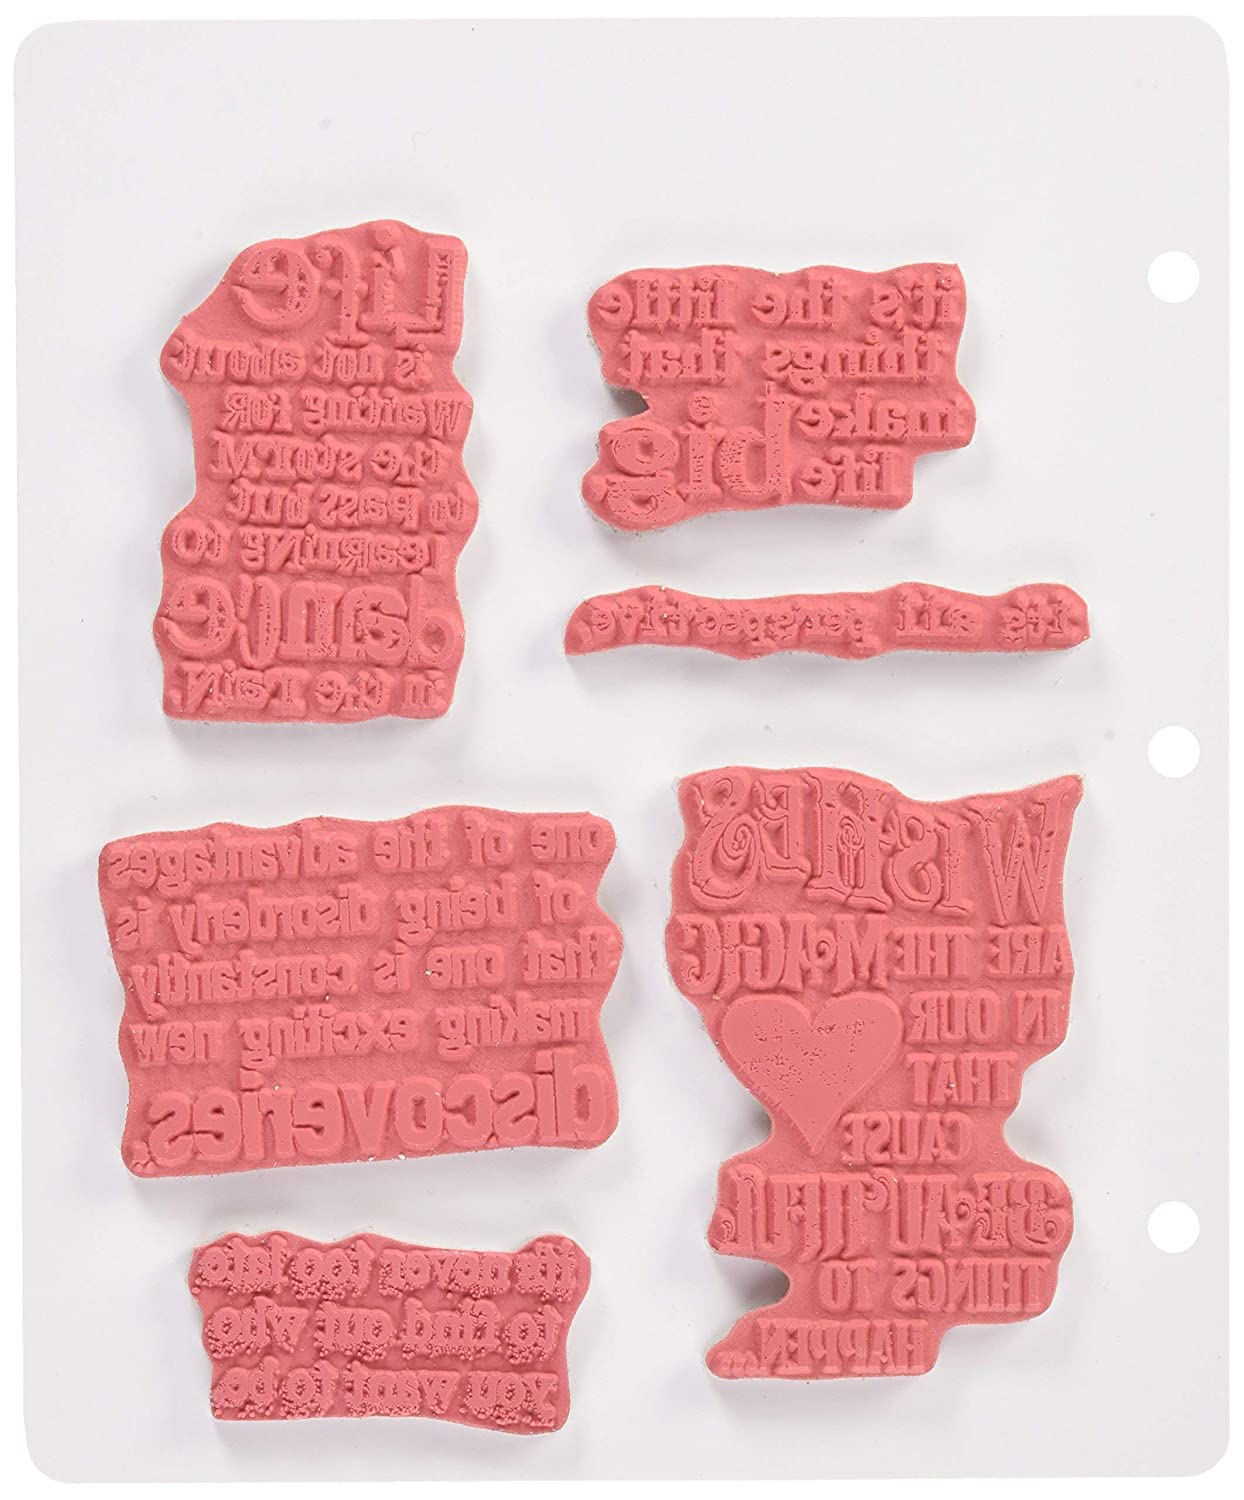 Good Thoughts Stampers Anonymous Tim Holtz Cling Rubber Stamp Set